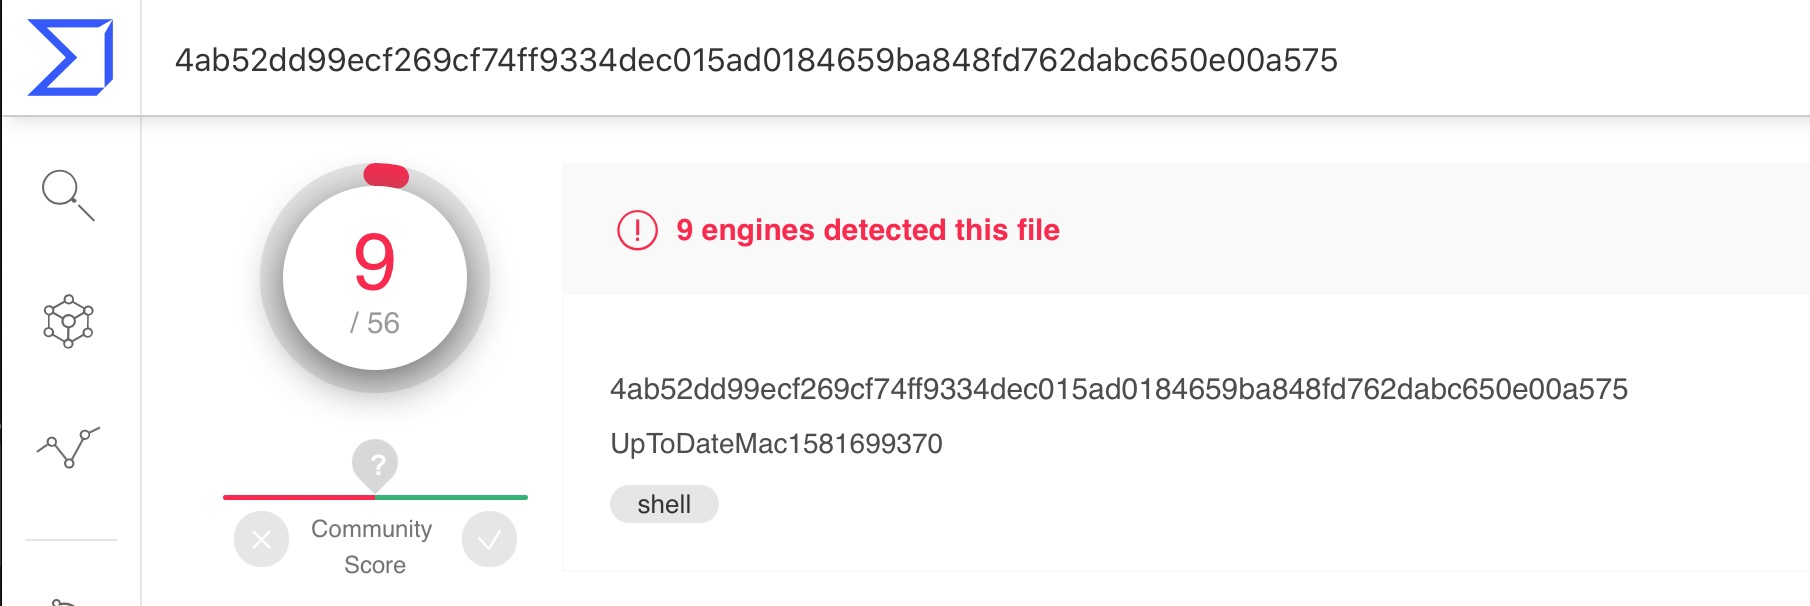 image of malicious adware script UpToDateMac being detected on VirusTotal